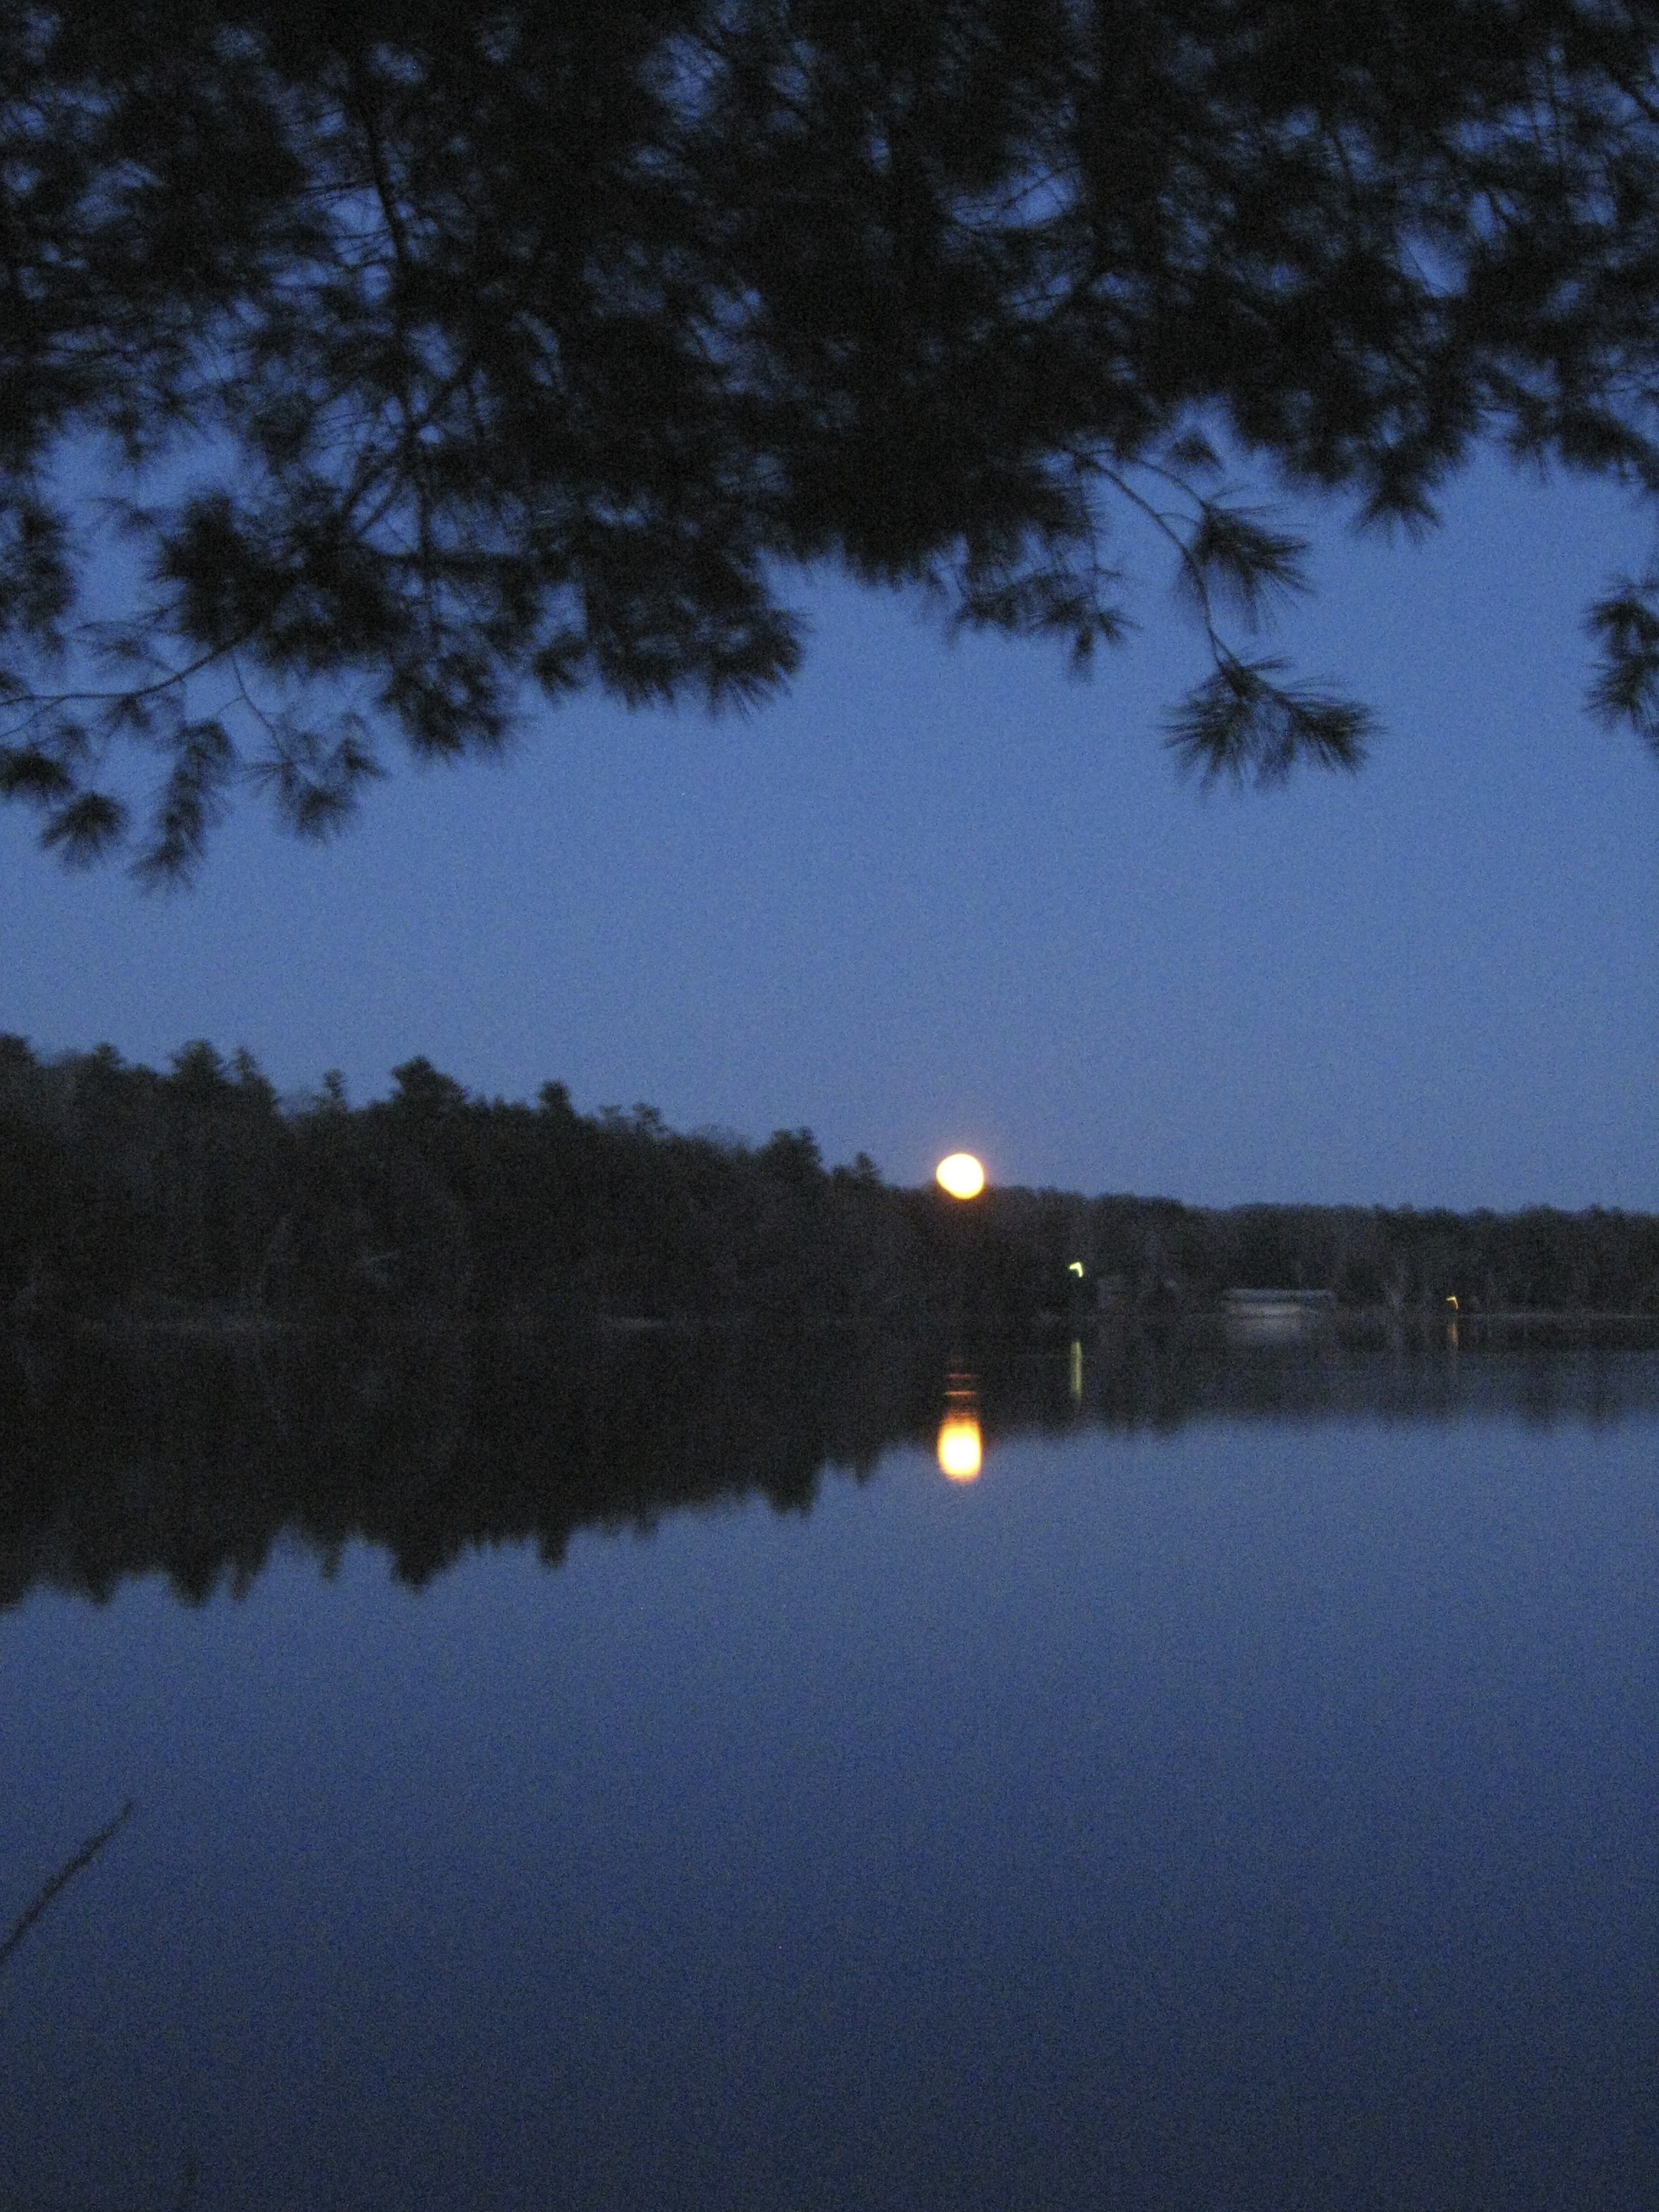 April's full moon, called the Awakening Moon in some traditions, certainly appropriate for this period of learning for me.